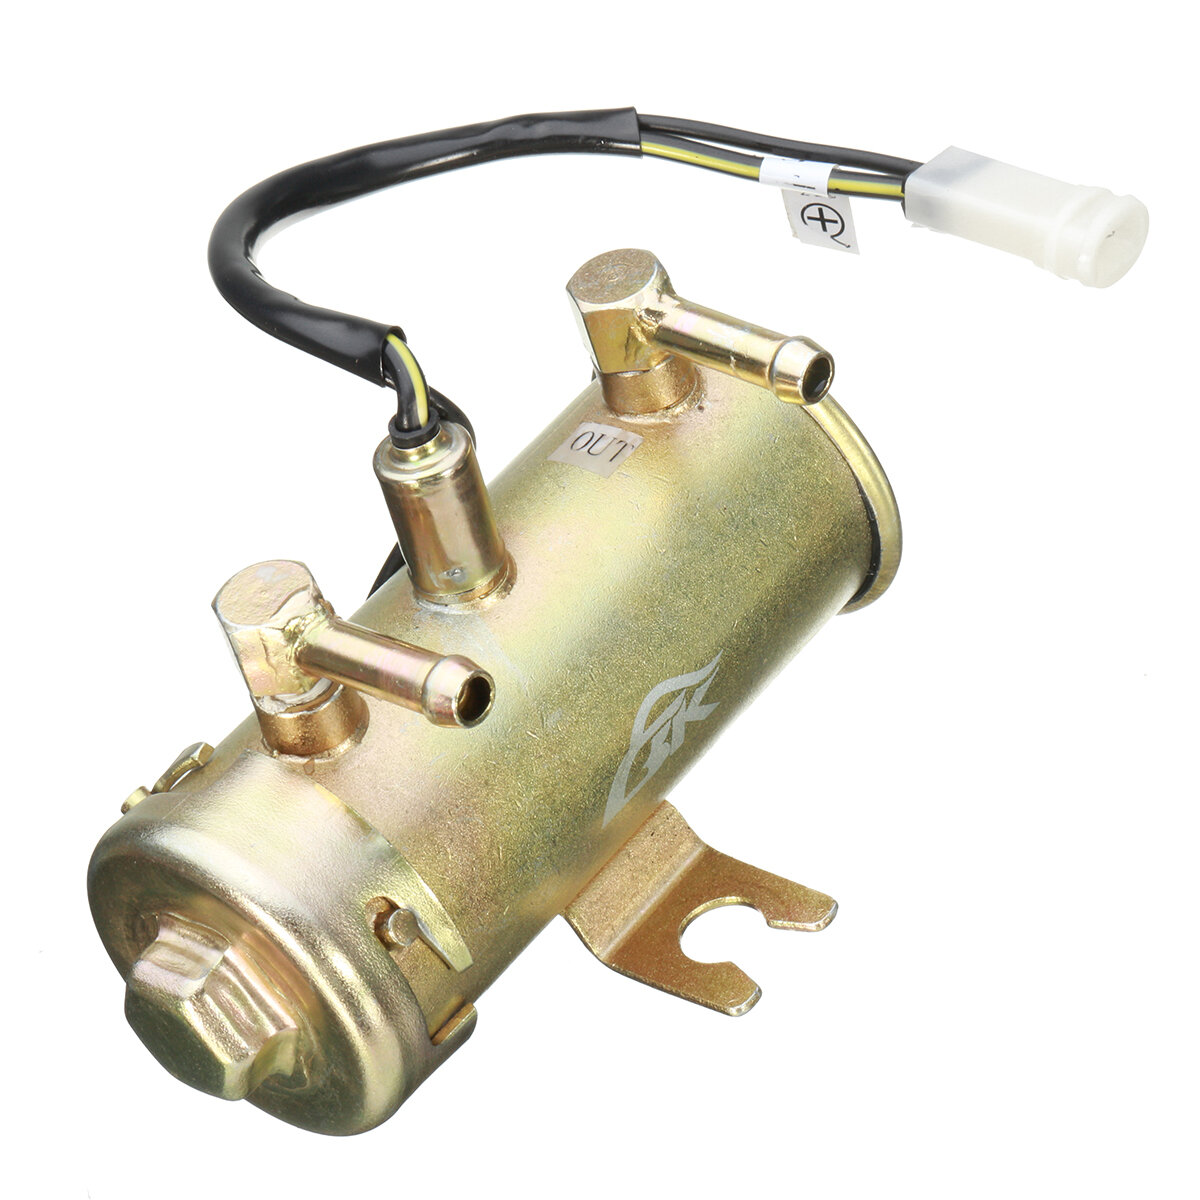 Keihin Fuel Pumps Wiring Harness For on relay for fuel pump, fuse for fuel pump, gasket for fuel pump,